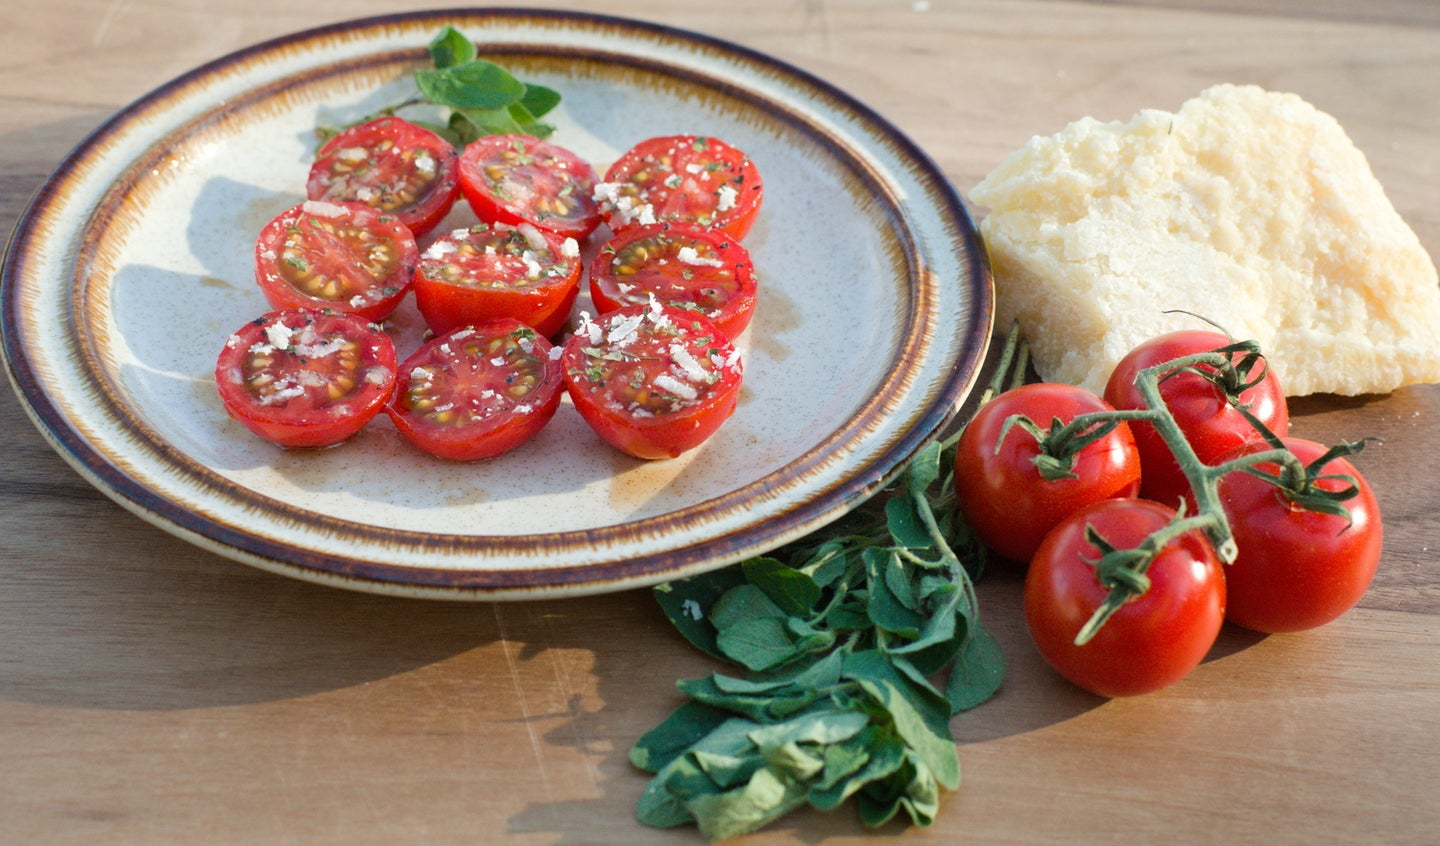 halved cherry tomatoes on a plate with marjoram, parmesan cheese, and other spices